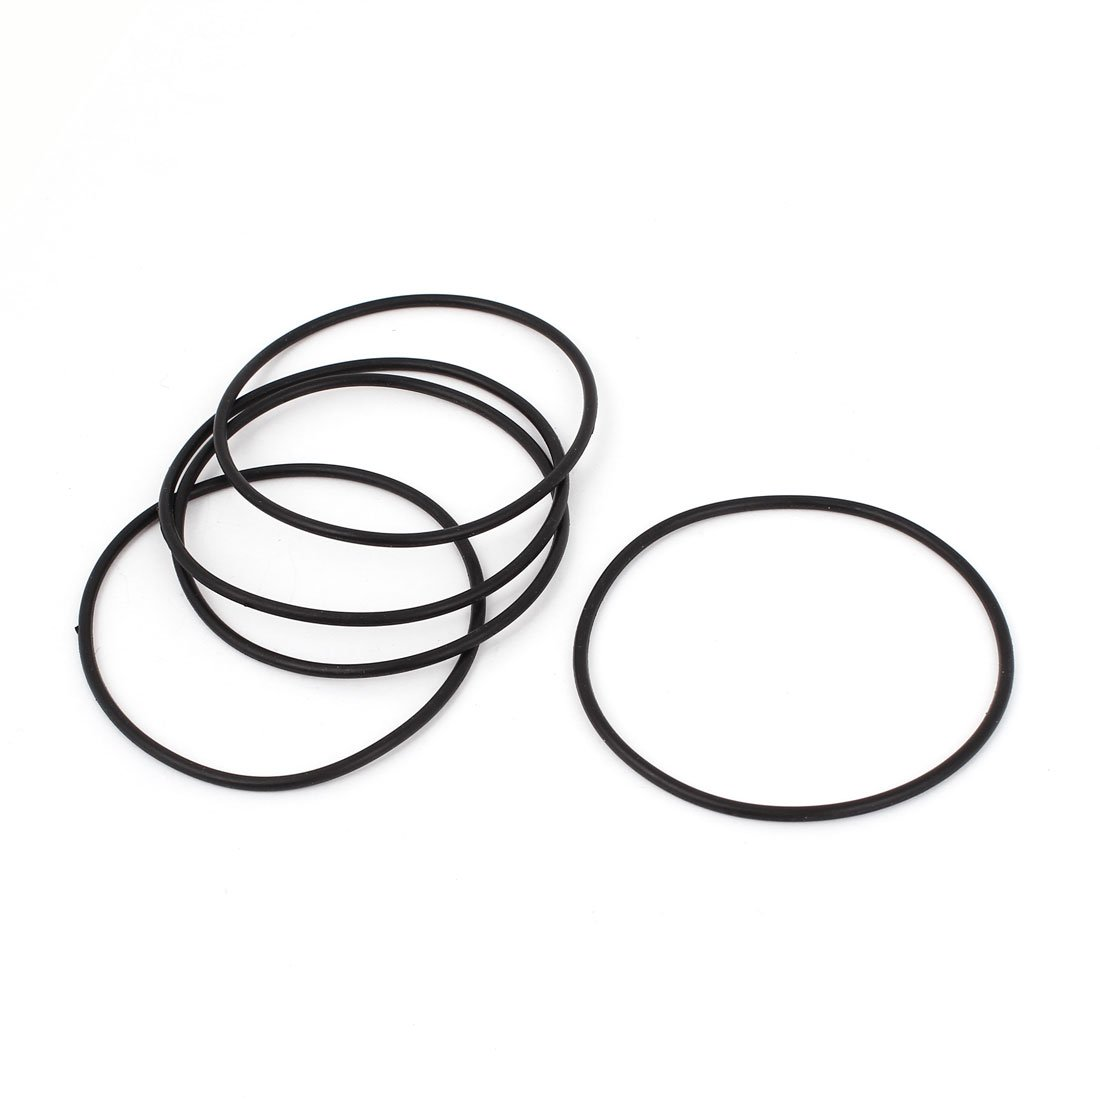 sourcingmap 5 Pcs Black Rubber O Shaped Rings Oil Seal Gasket Washer 70mm x 66mm x 2mm